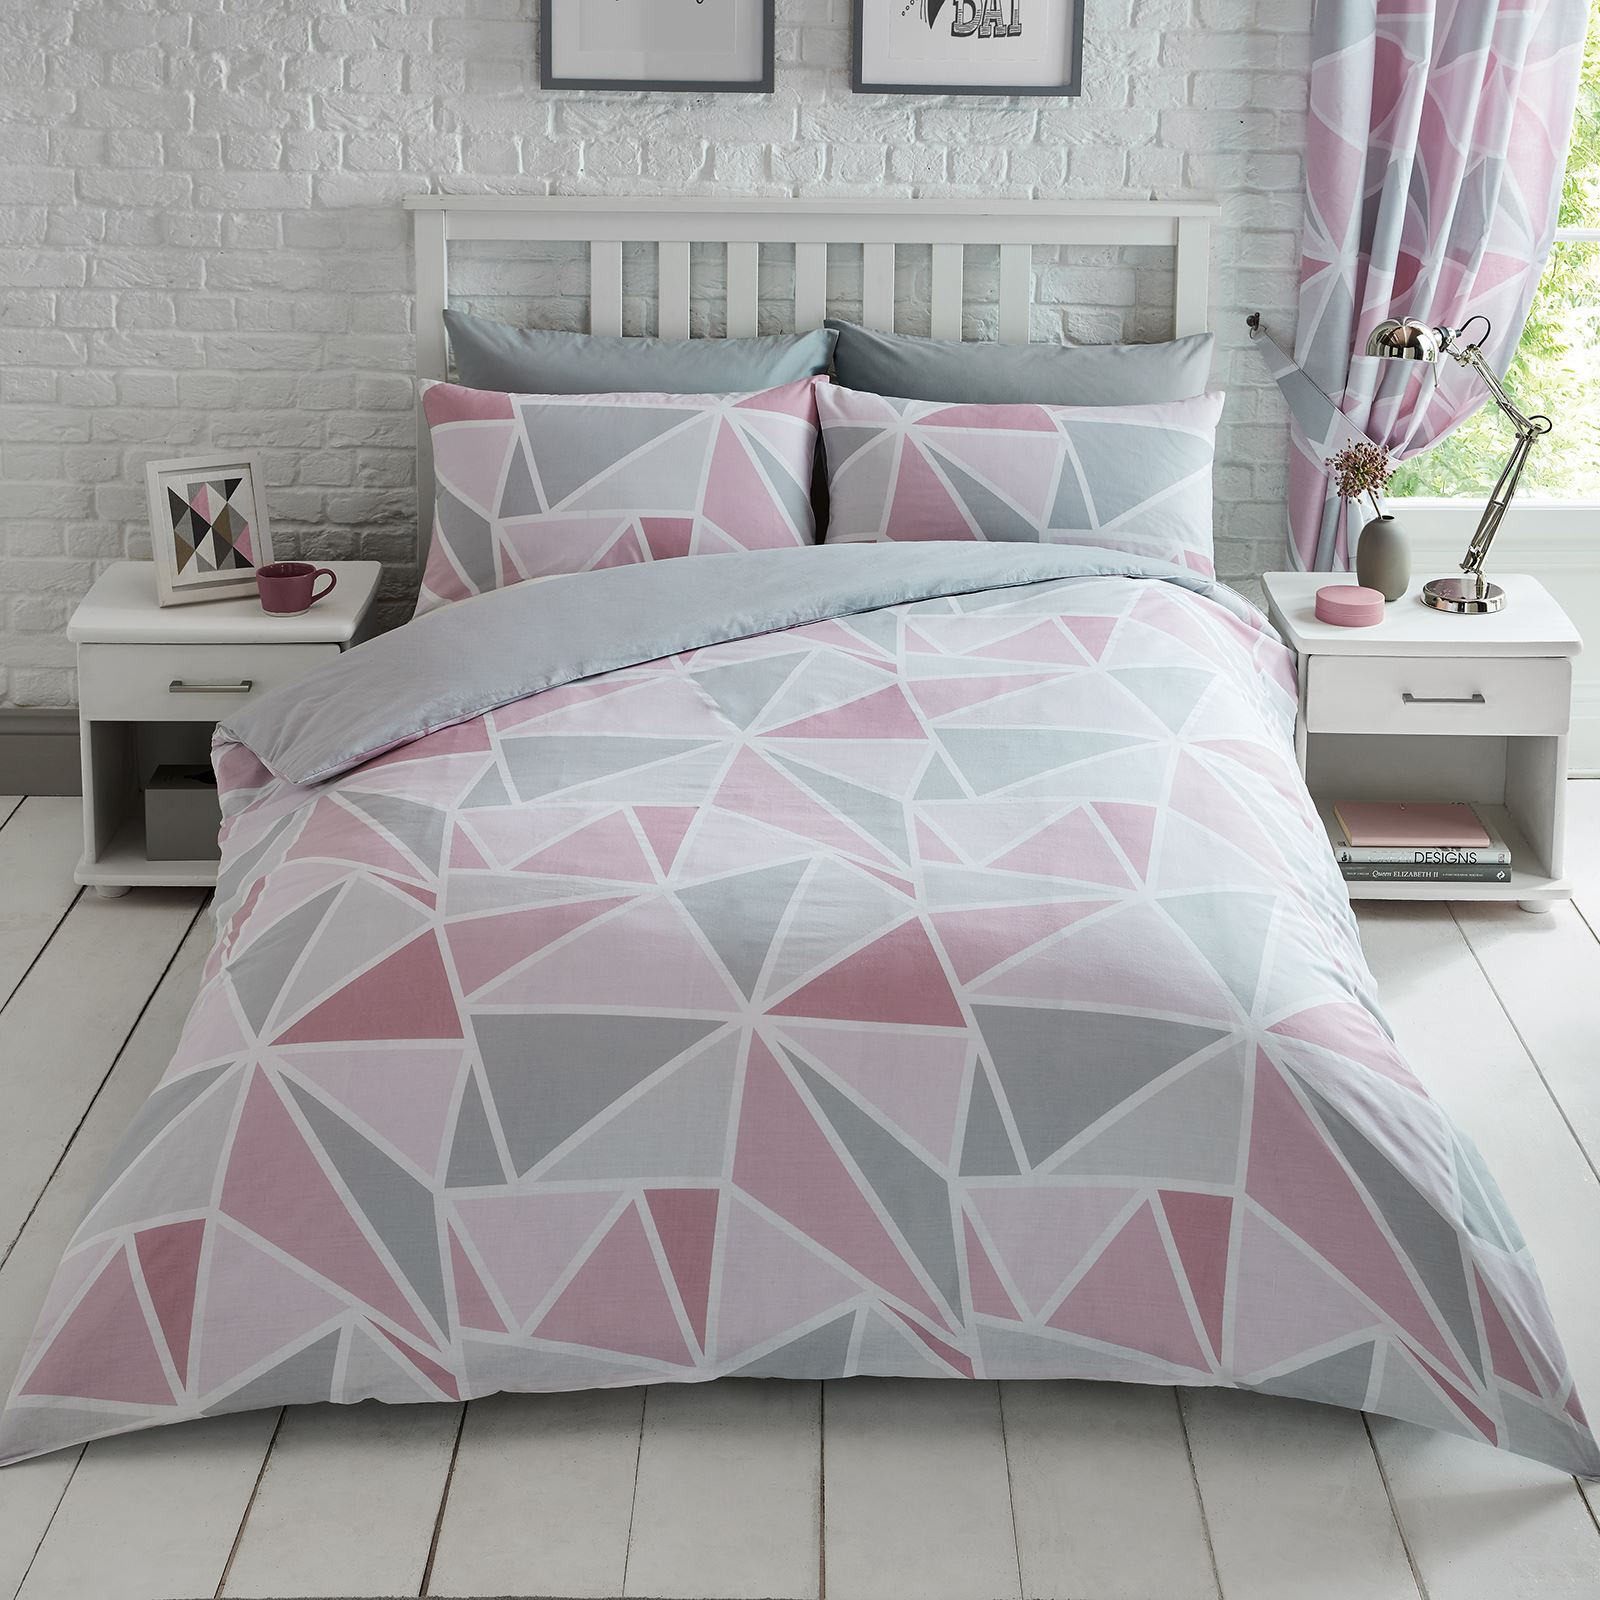 Geometric bedding duvet cover sets diamond chevron Housse de couette rose gold